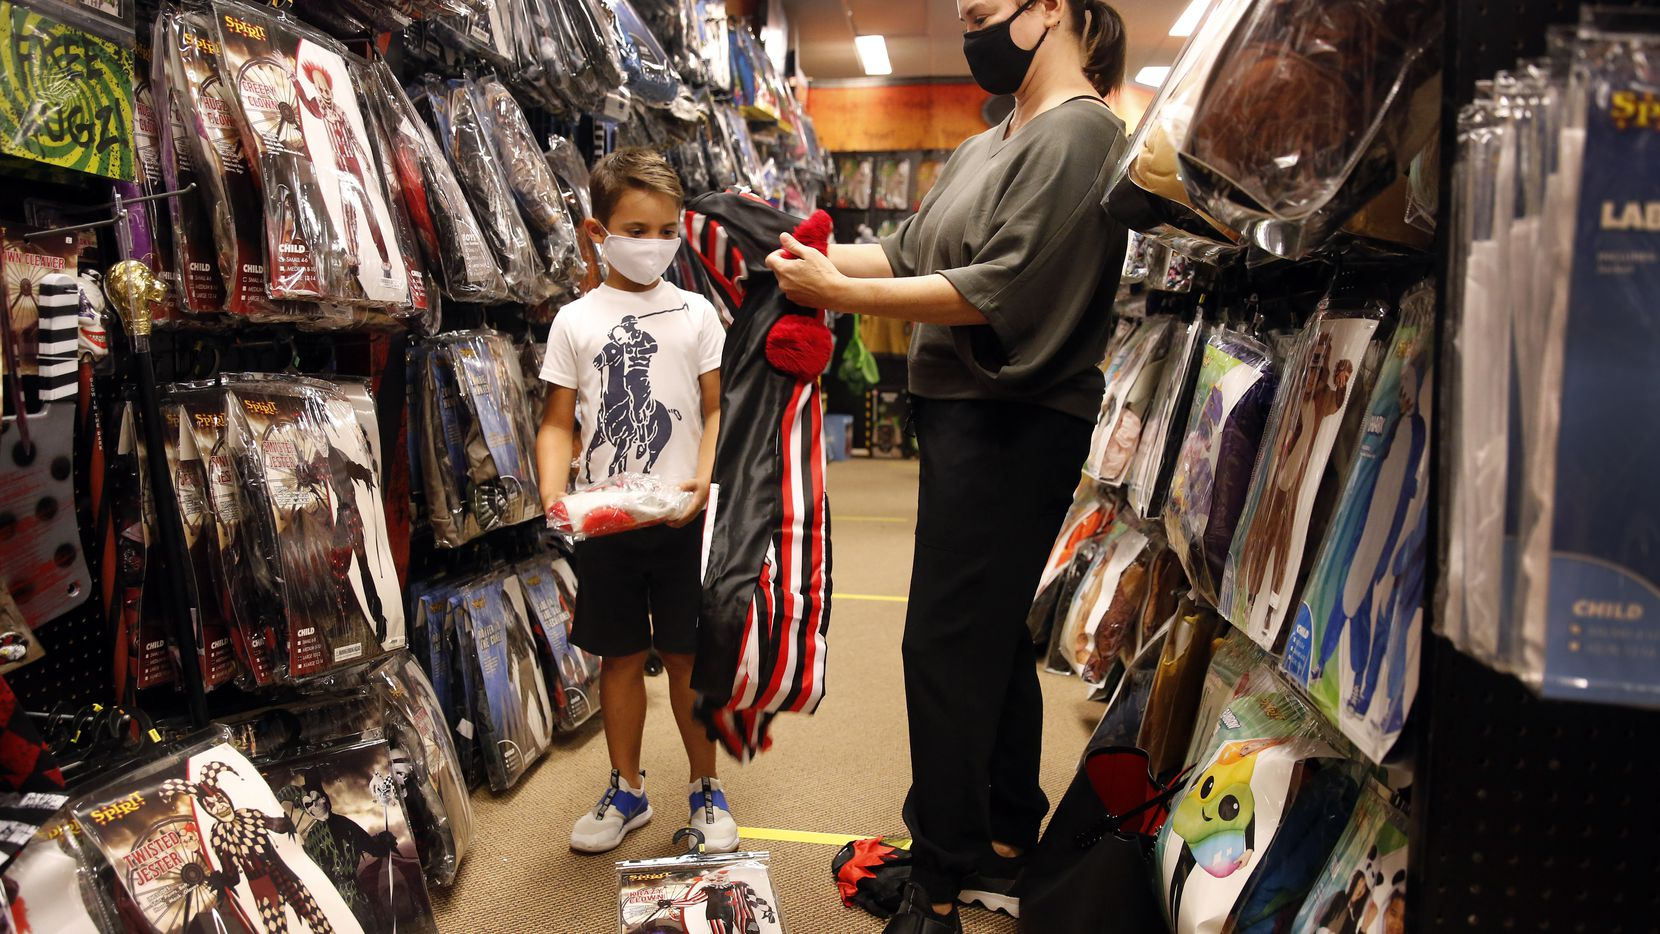 Carey Marin of Richardson sees if a twisted circus clown outfit will fit her son, Joshua, at Spirit Halloween, a pop-up store on Coit Road in Dallas, Thursday, October 1, 2020.